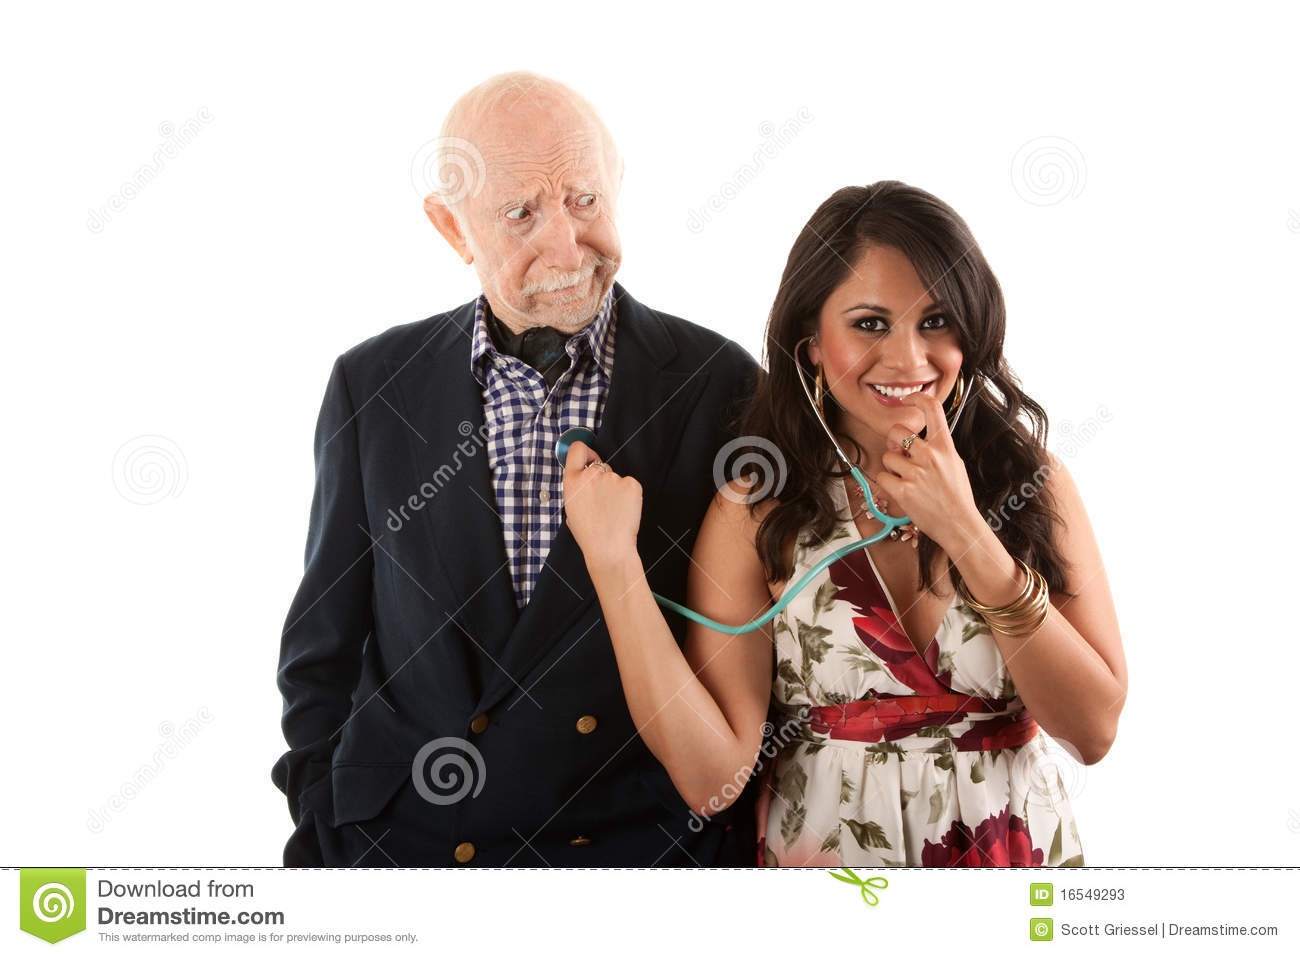 Elderly man with gold-digger companion or wife